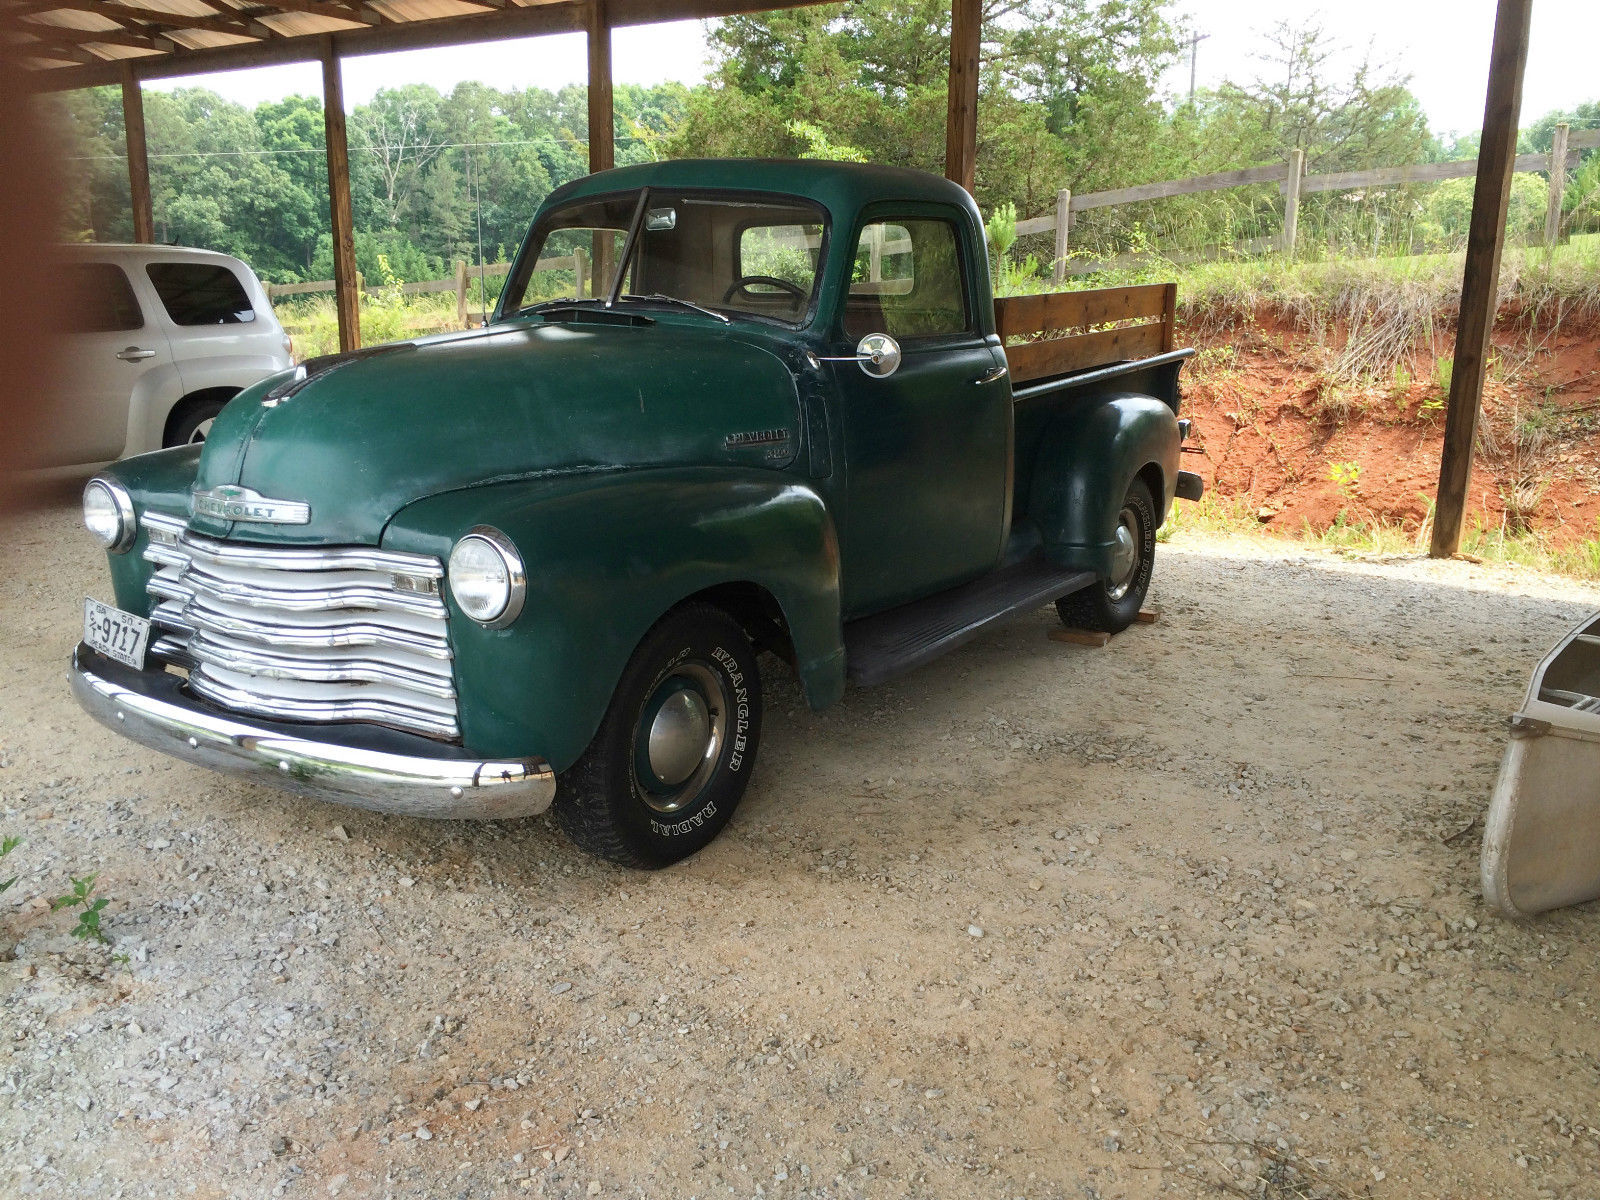 1950 chevrolet 3100 pickup truck runs great for sale in martin georgia united states. Black Bedroom Furniture Sets. Home Design Ideas